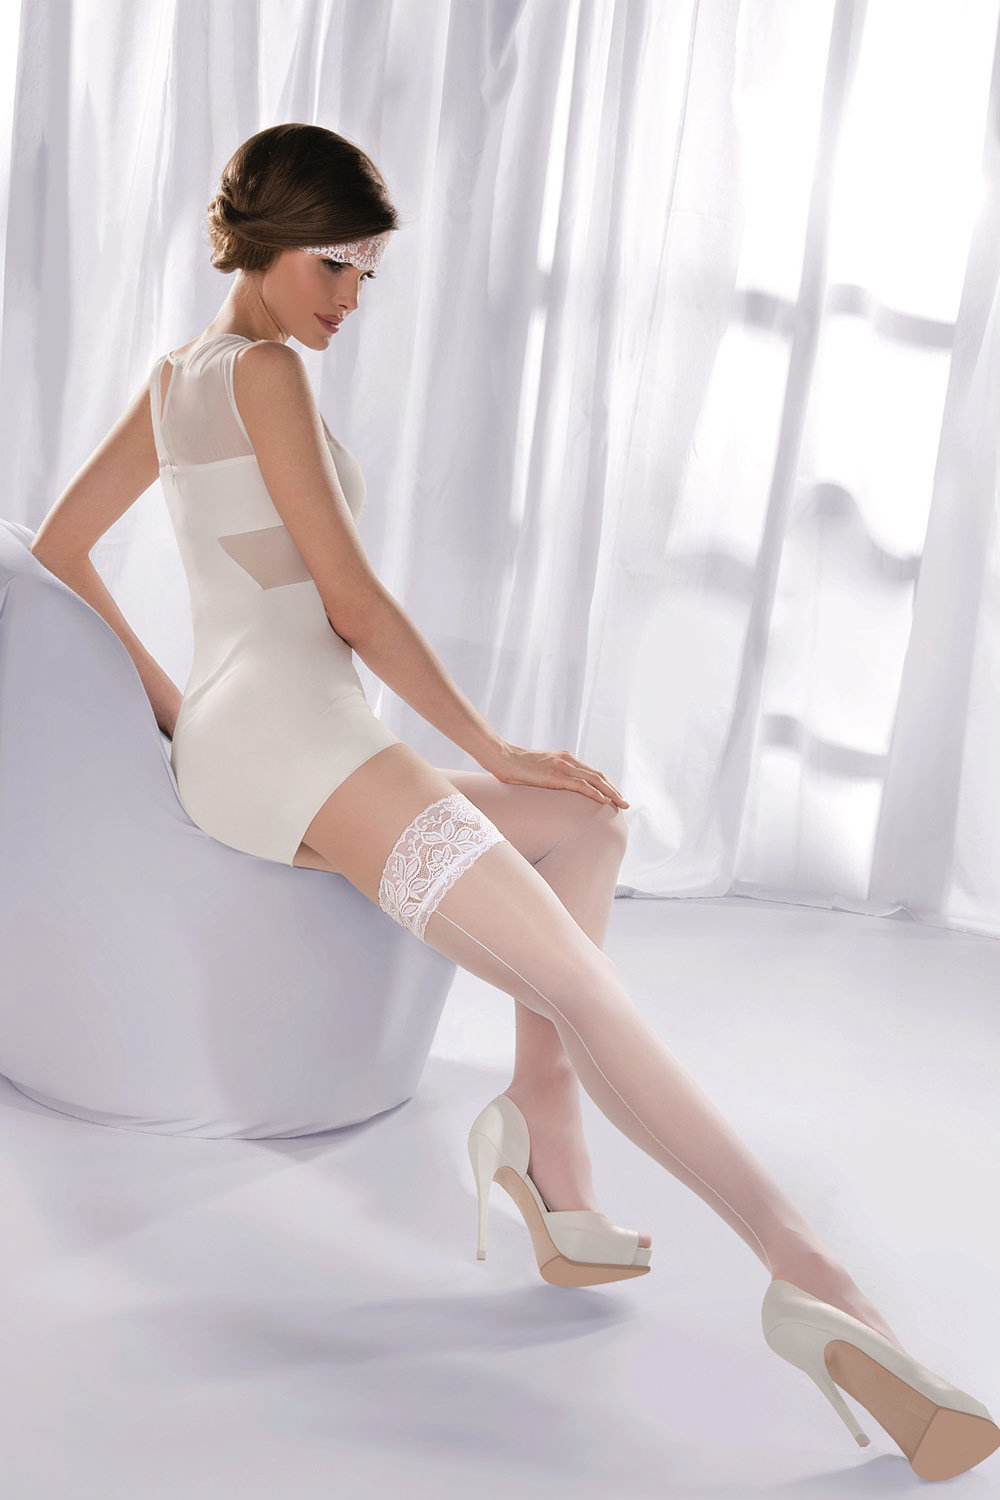 white-support-pantyhose-real-young-naked-model